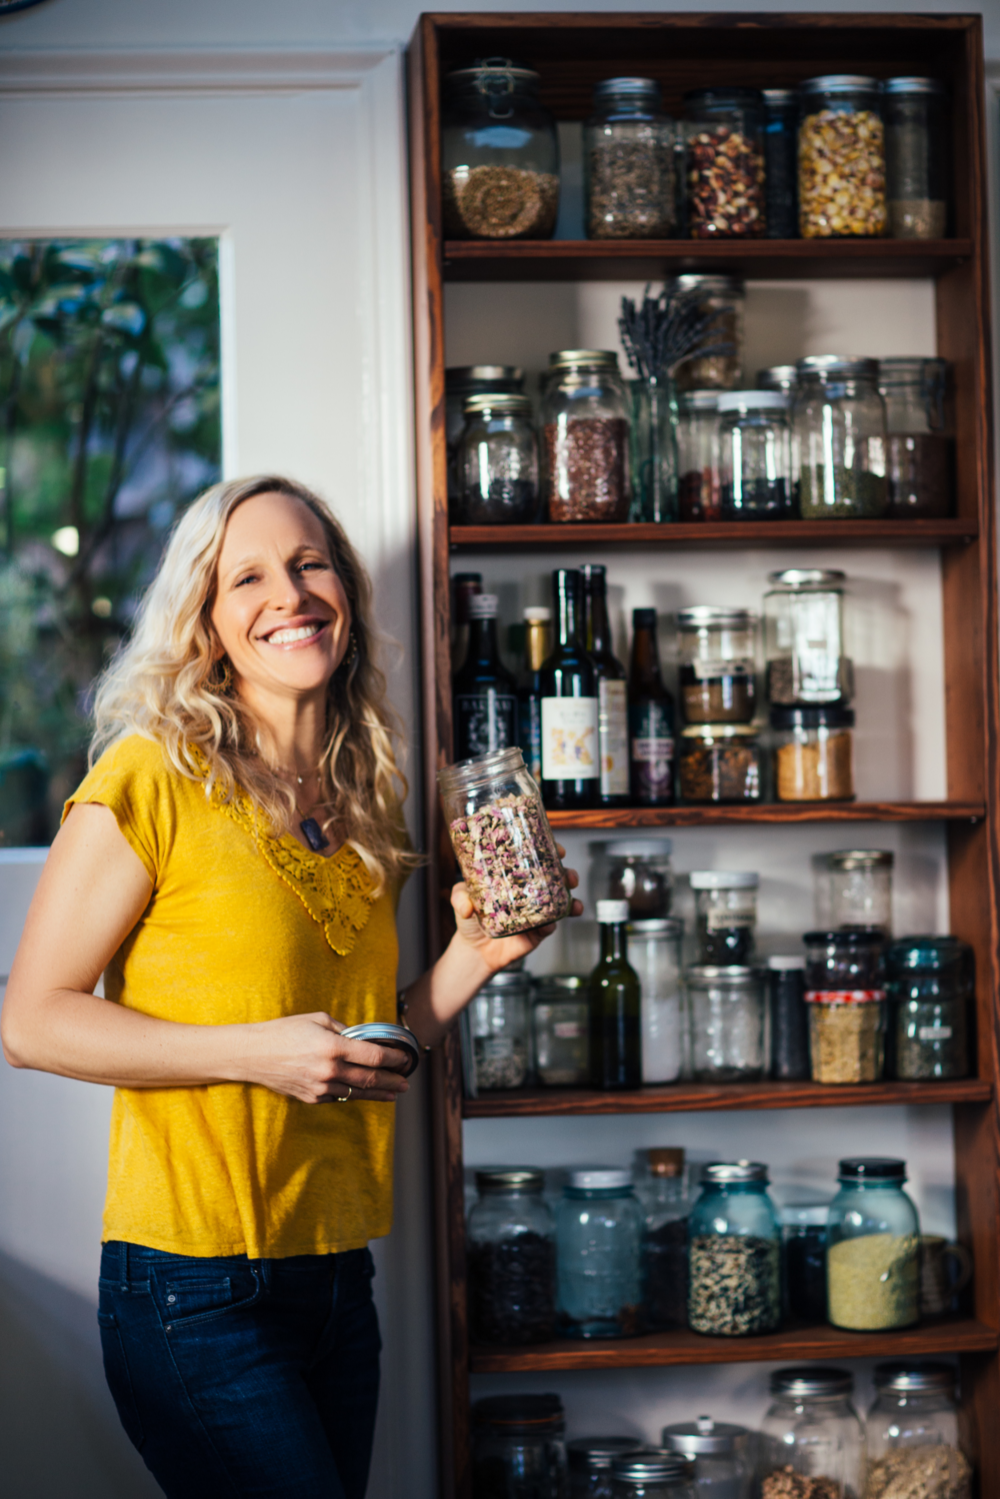 Dara with many jars of herbs, spices, and teas